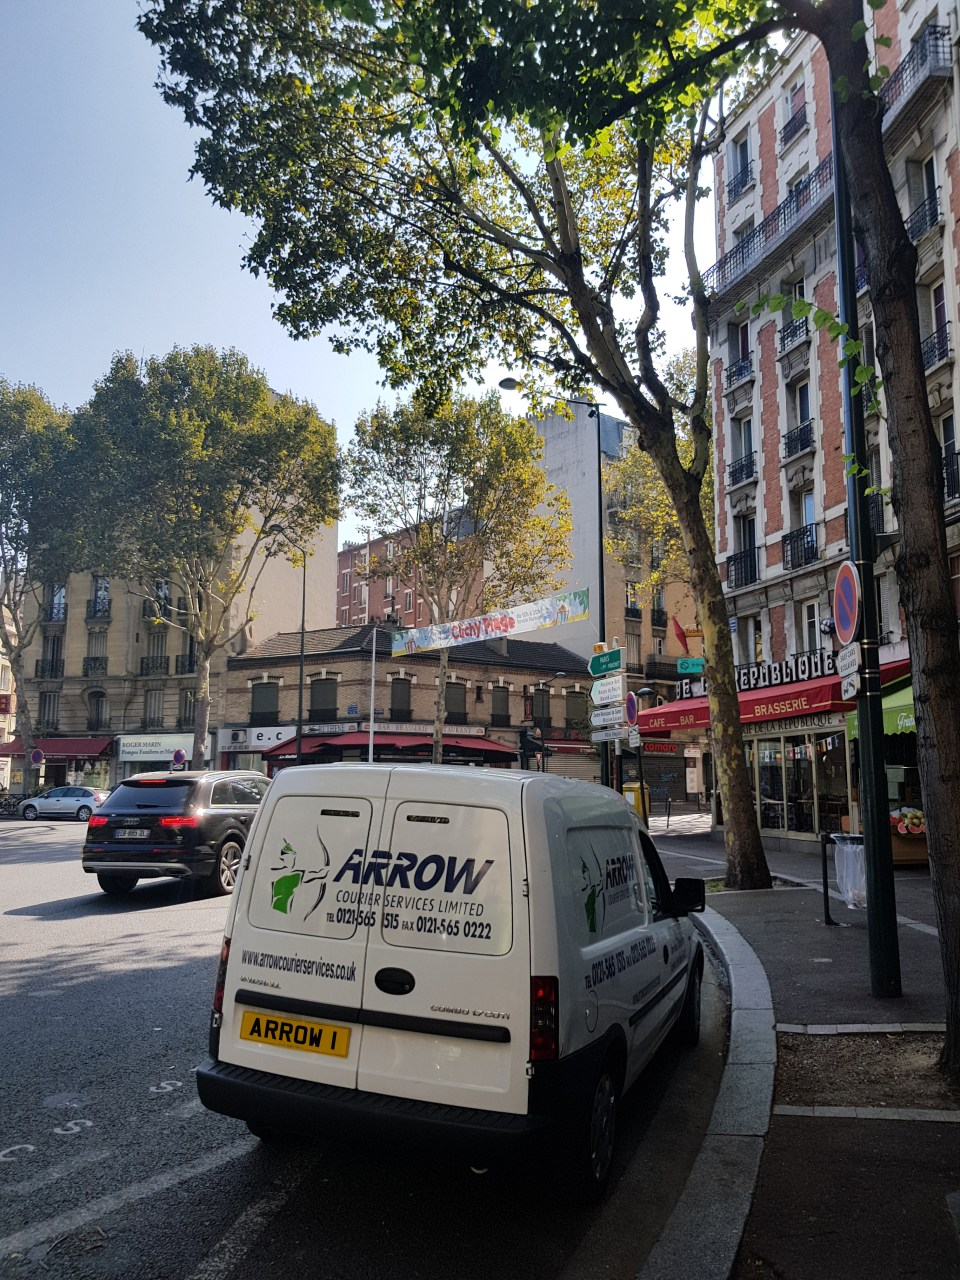 "img src=""Arrow-Couriers-Small-Van-Outside-Shops-in-Paris-2.jpg"" alt=""Arrow Couriers parked outside shops in Paris"""